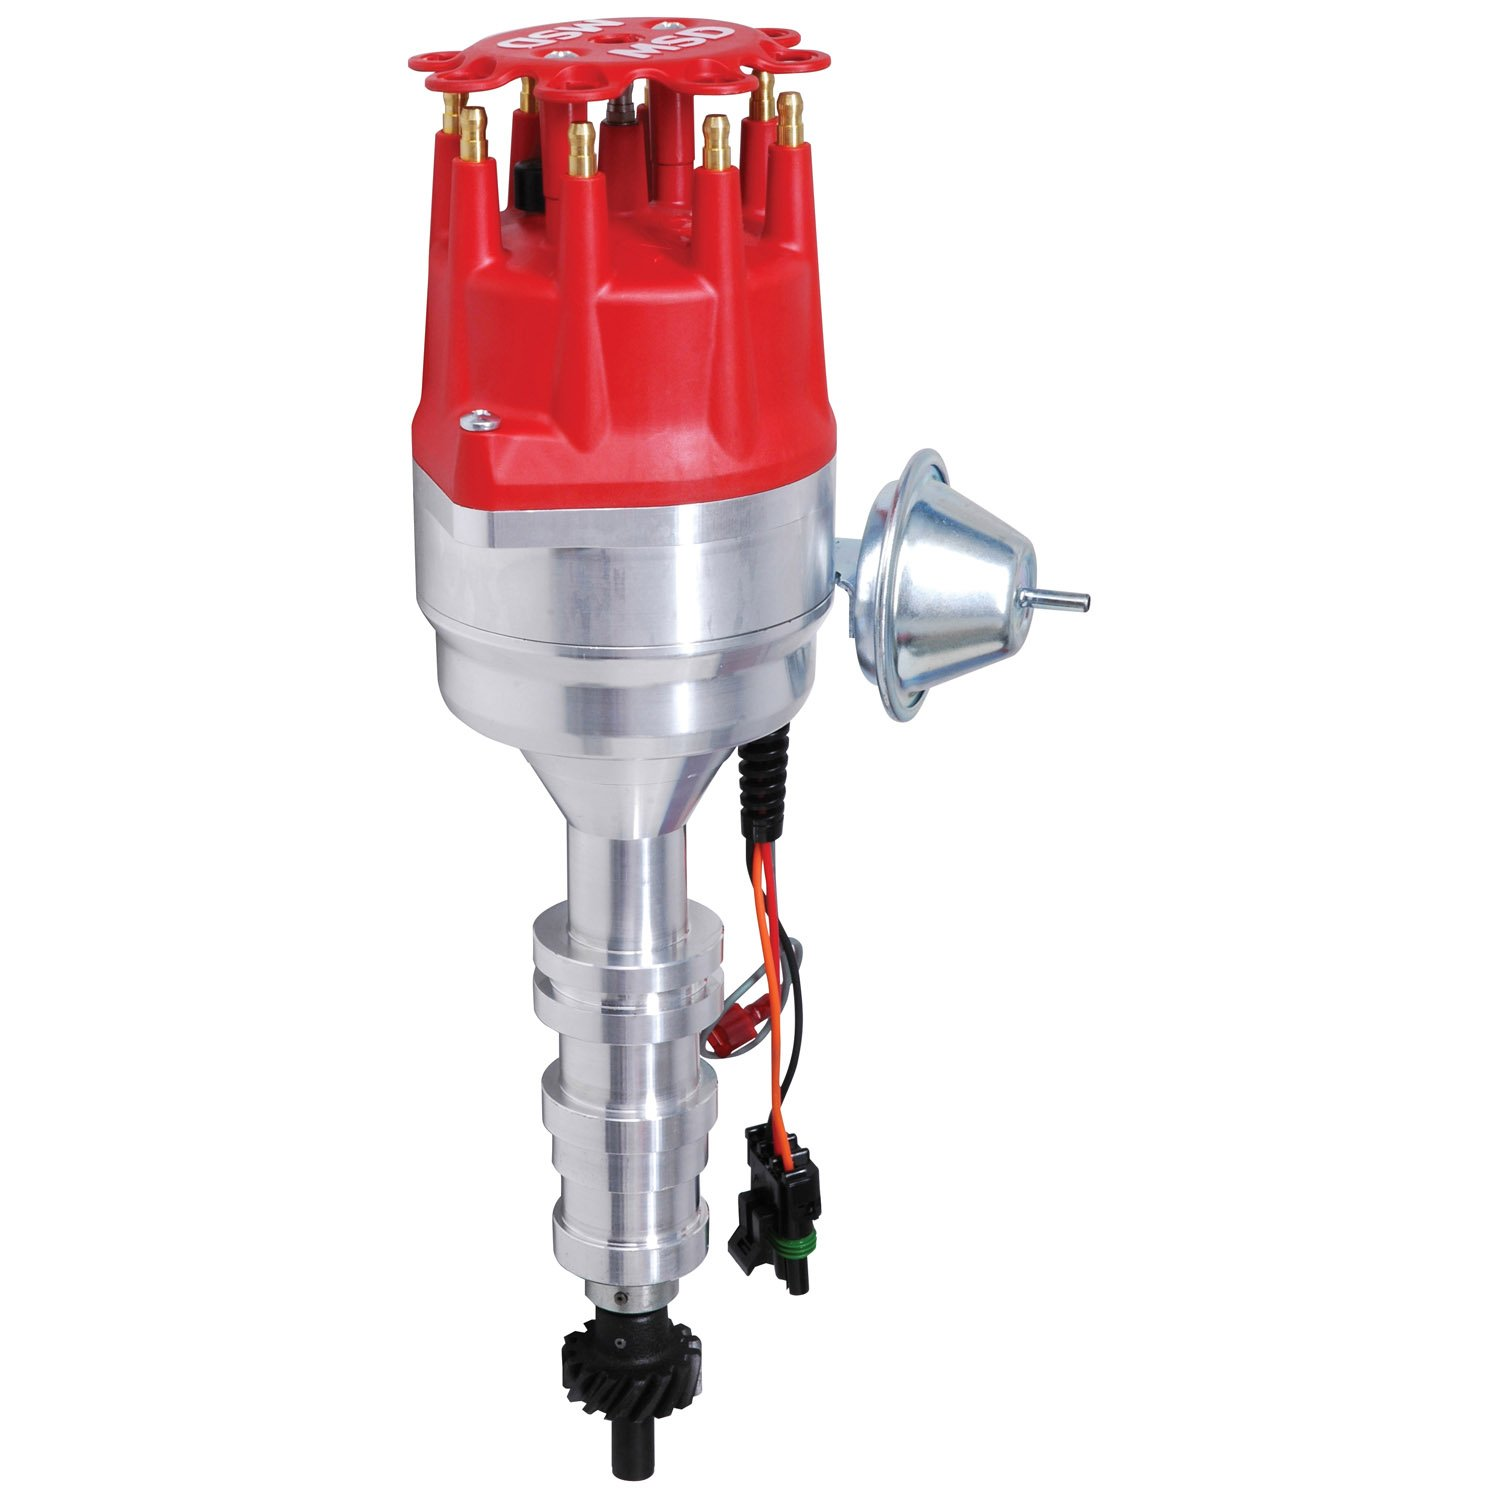 hight resolution of 8383 ford y block ready to run distributor image